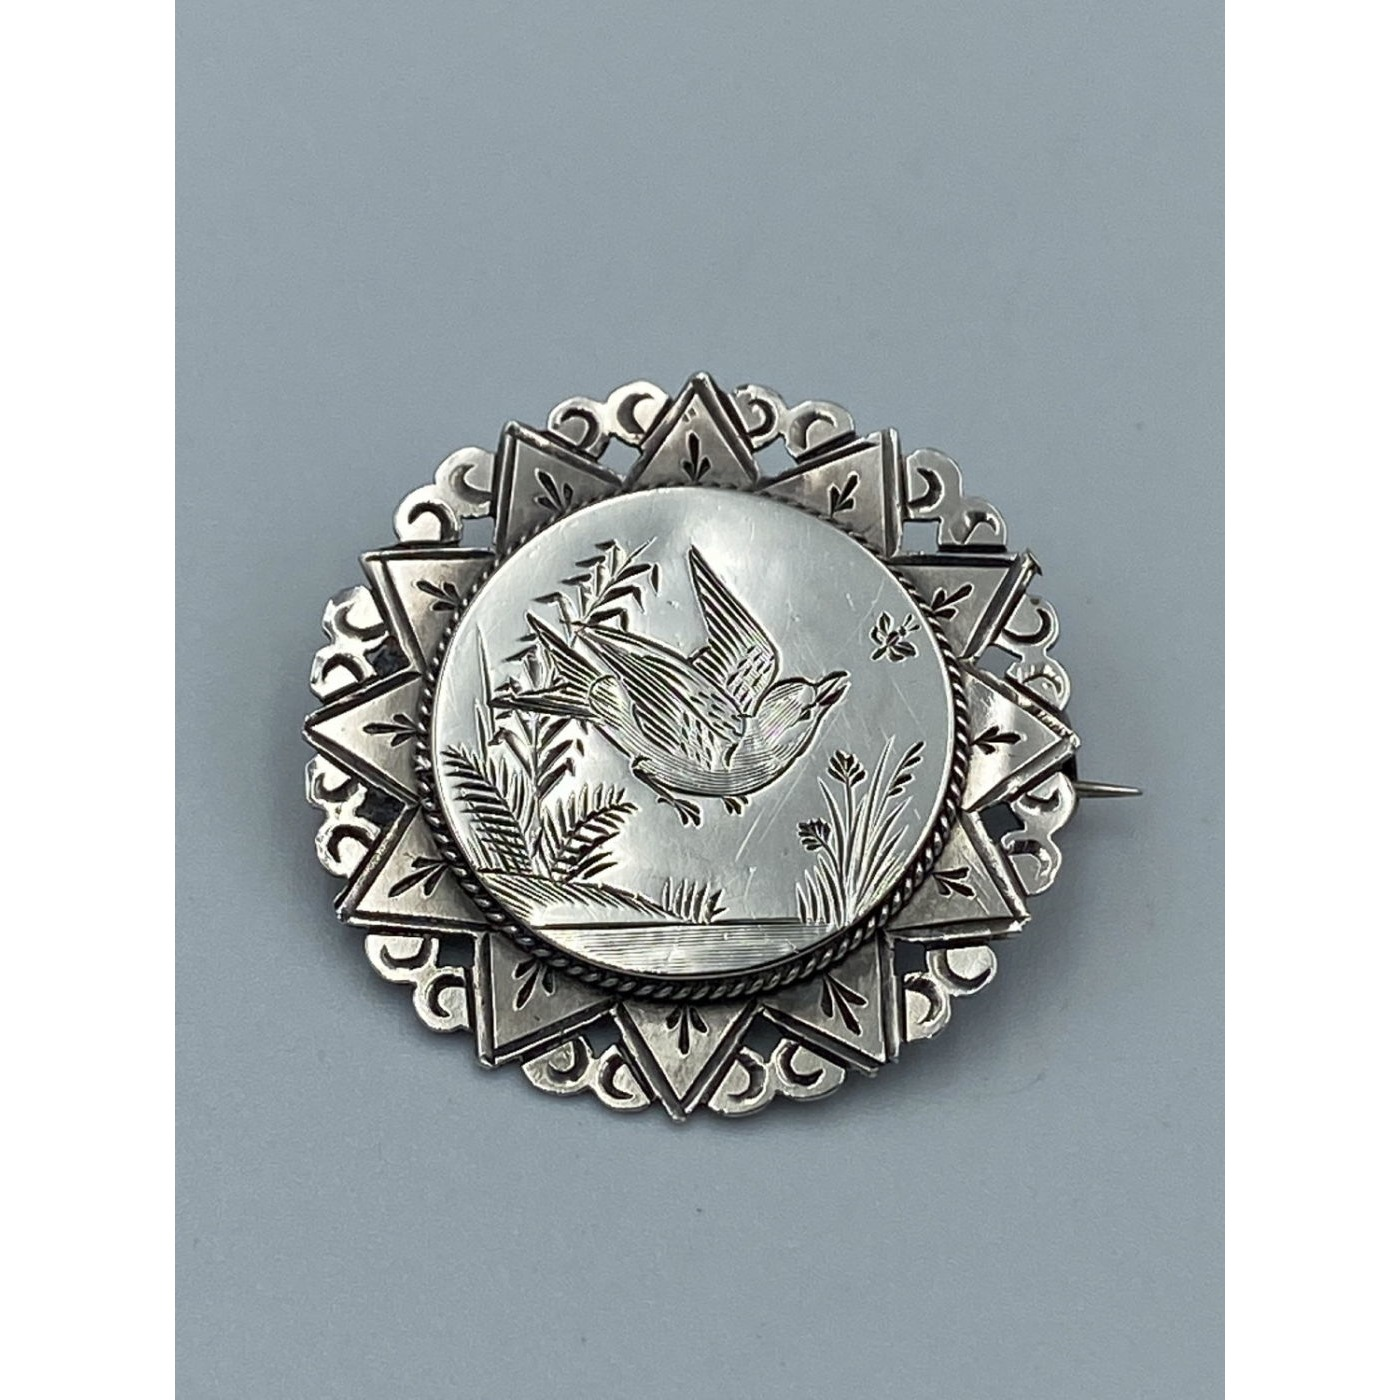 Lovely Round Victorian Pin with Large Center Swallow Bird in Flight